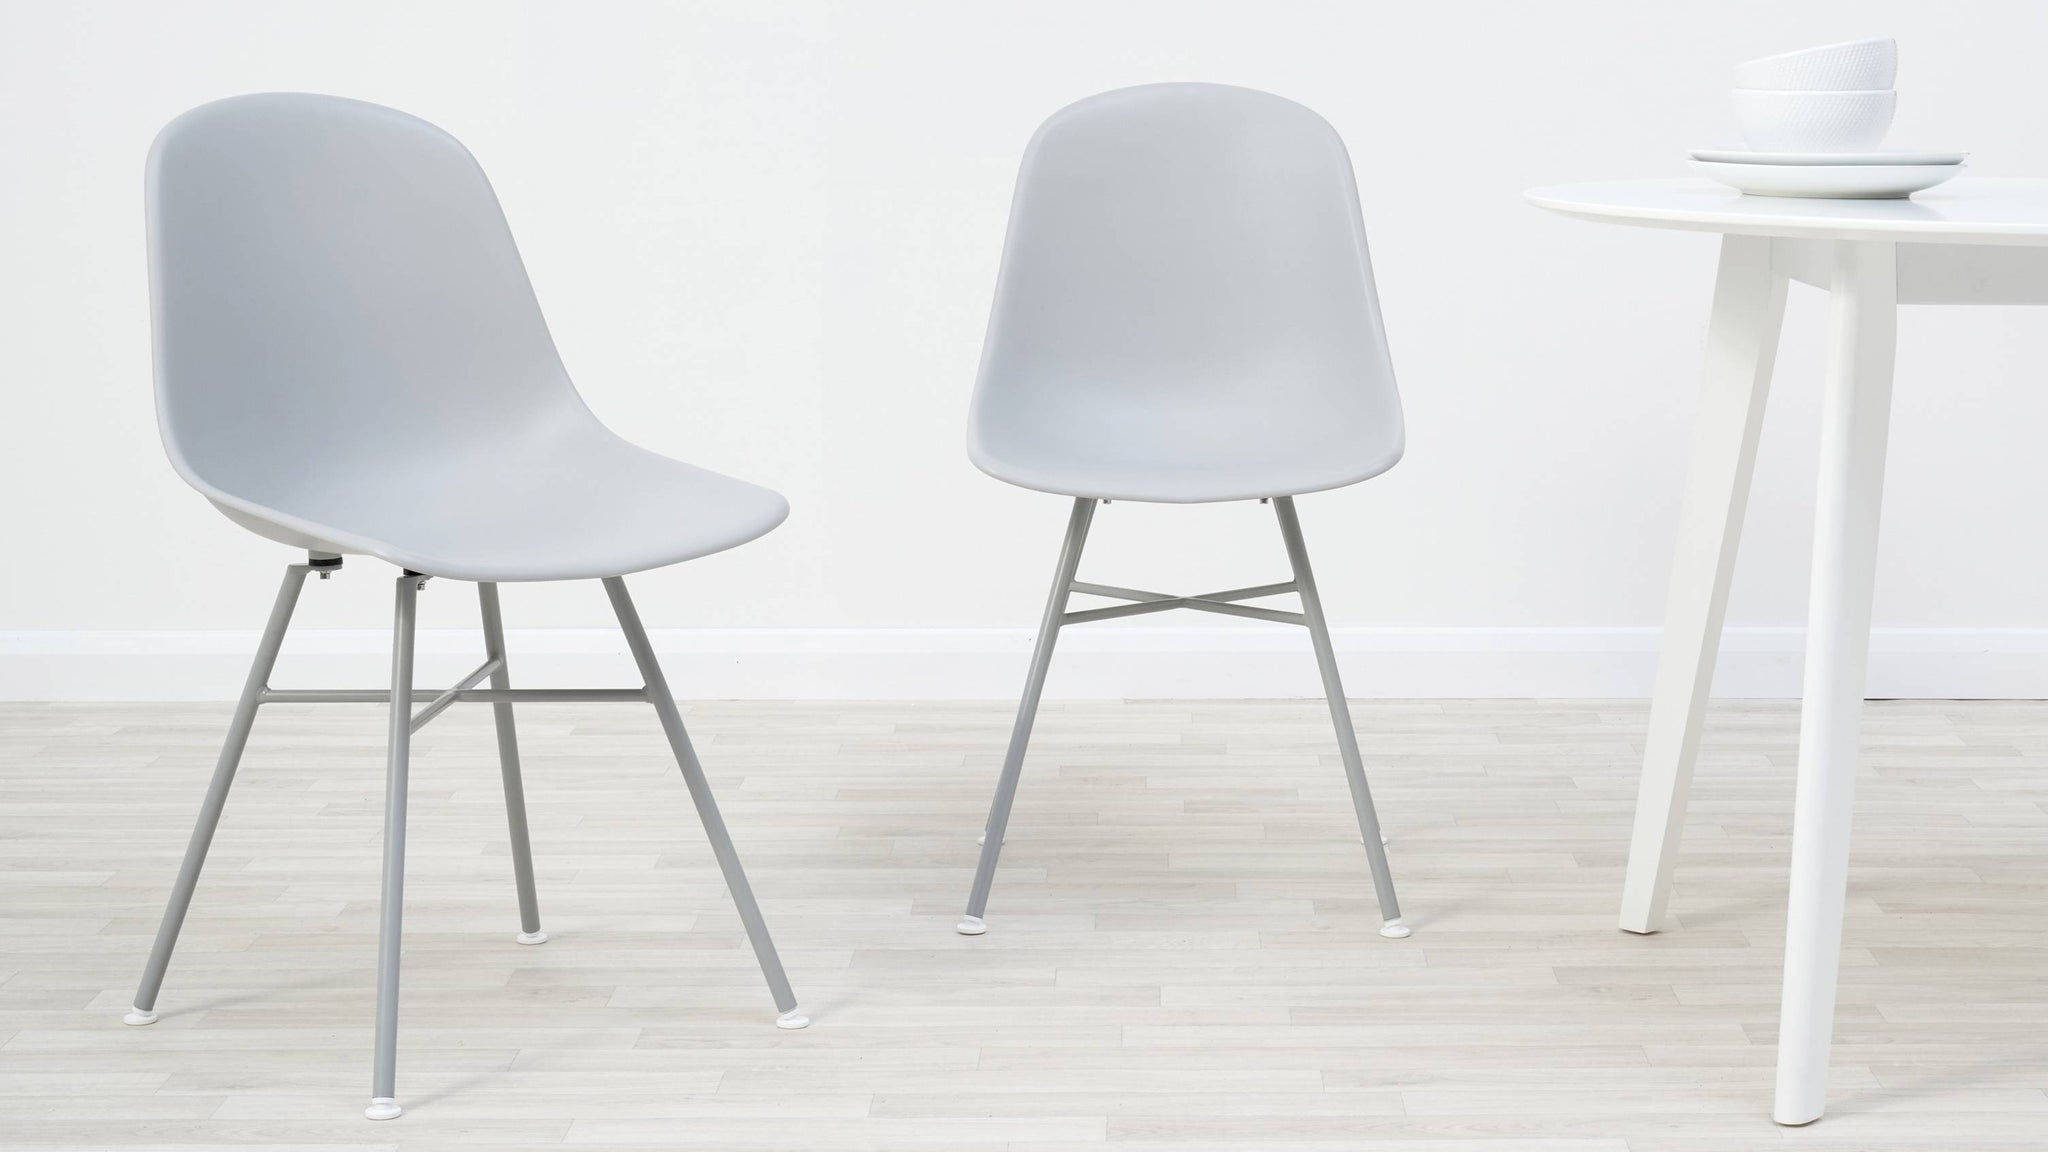 Moulded plastic dining chairs